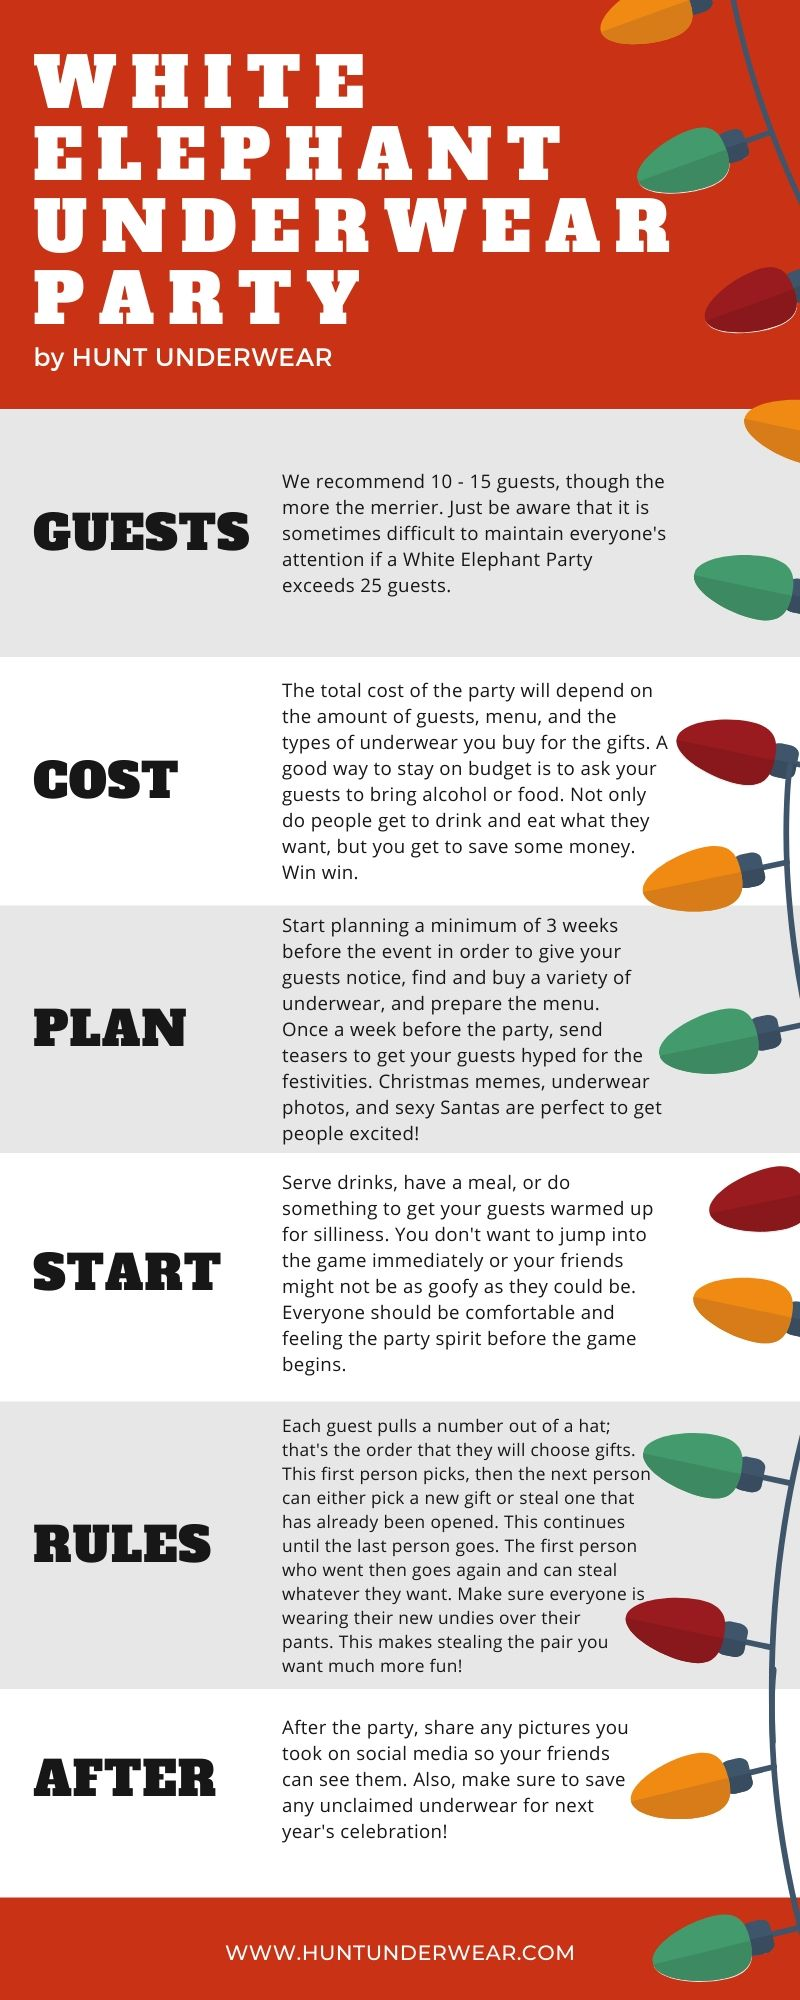 how to plan a white elephant party infographic